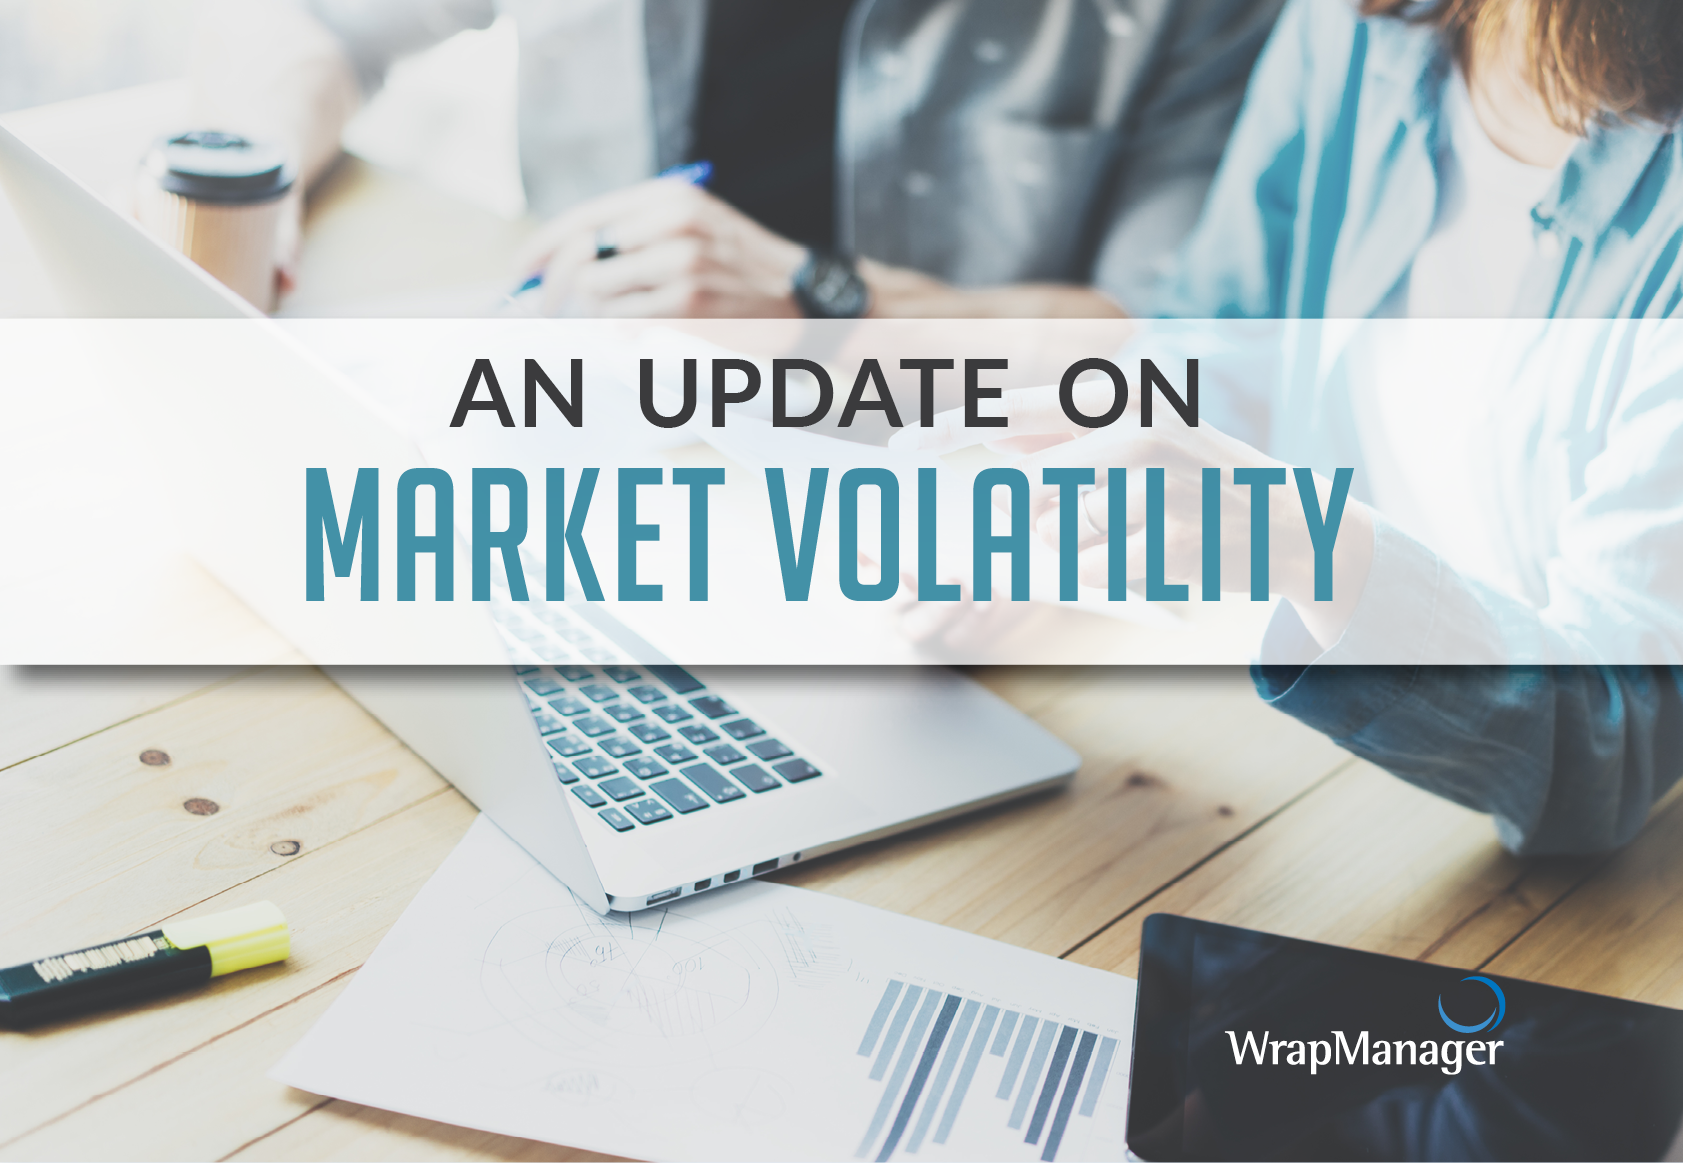 How Inflation and Interest Rate Fears Could Have Been to Blame for Recent Market Volatility